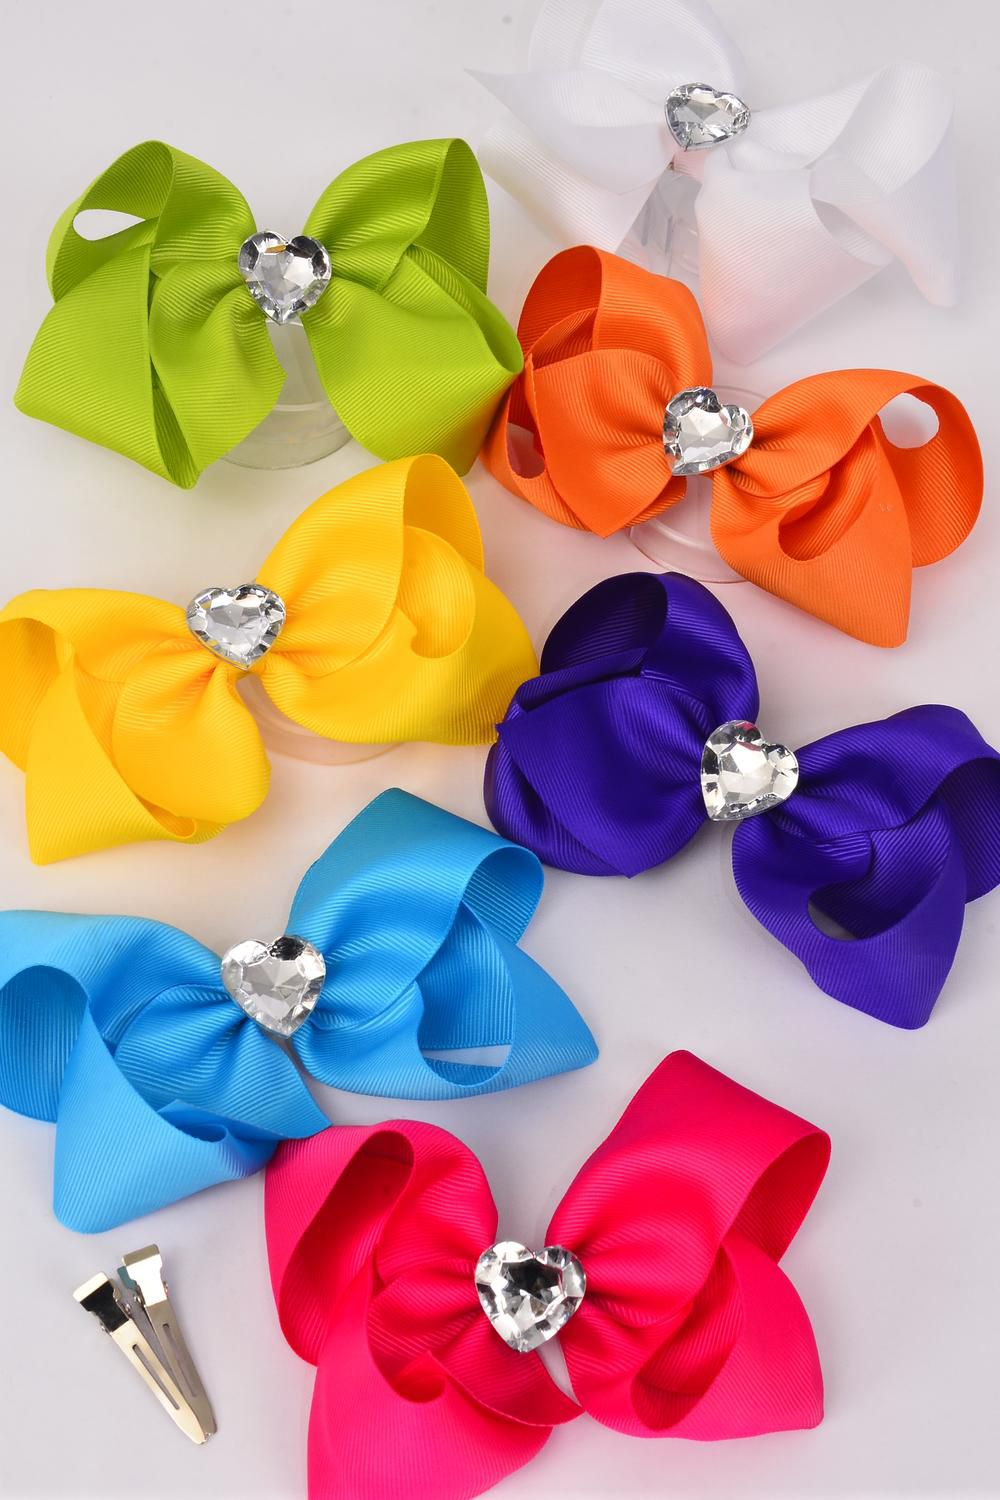 "Hair Bow Jumbo Citrus Center  Large Acrylic Clear Heart Grosgrain Bow-tie/DZ **Citrus** Alligator Clip,Size-6""x 5"",2 White,2 Fuchsia,2 Blue,2 Purple,2 Yellow,1Orange,1 Lime,7 Color Asst,Clip Strip & UPC Code"